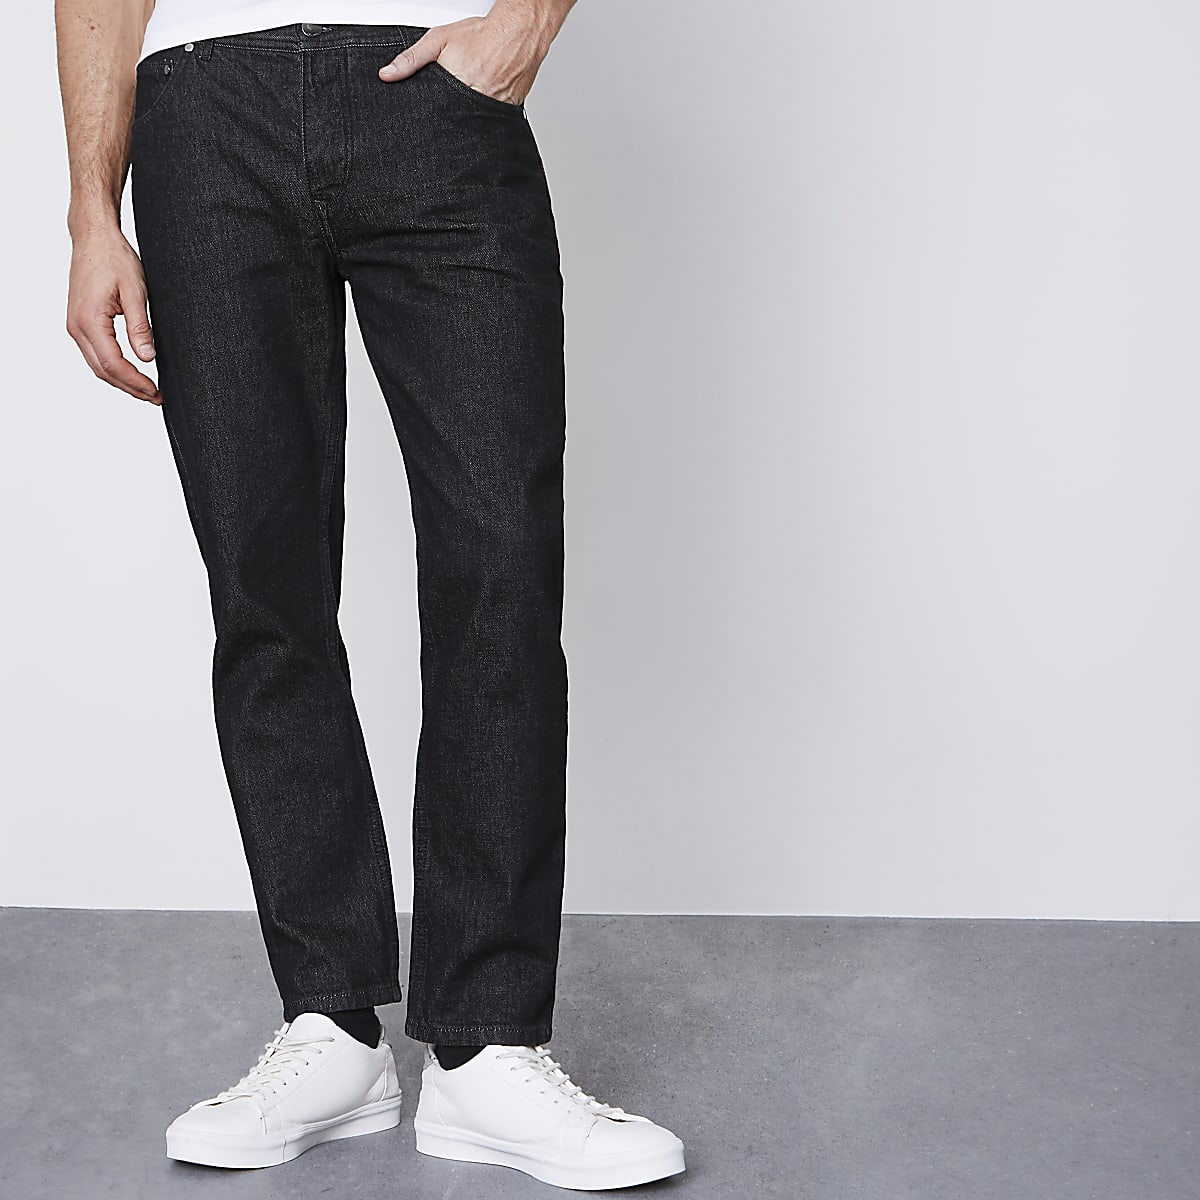 Black Jimmy tapered jeans